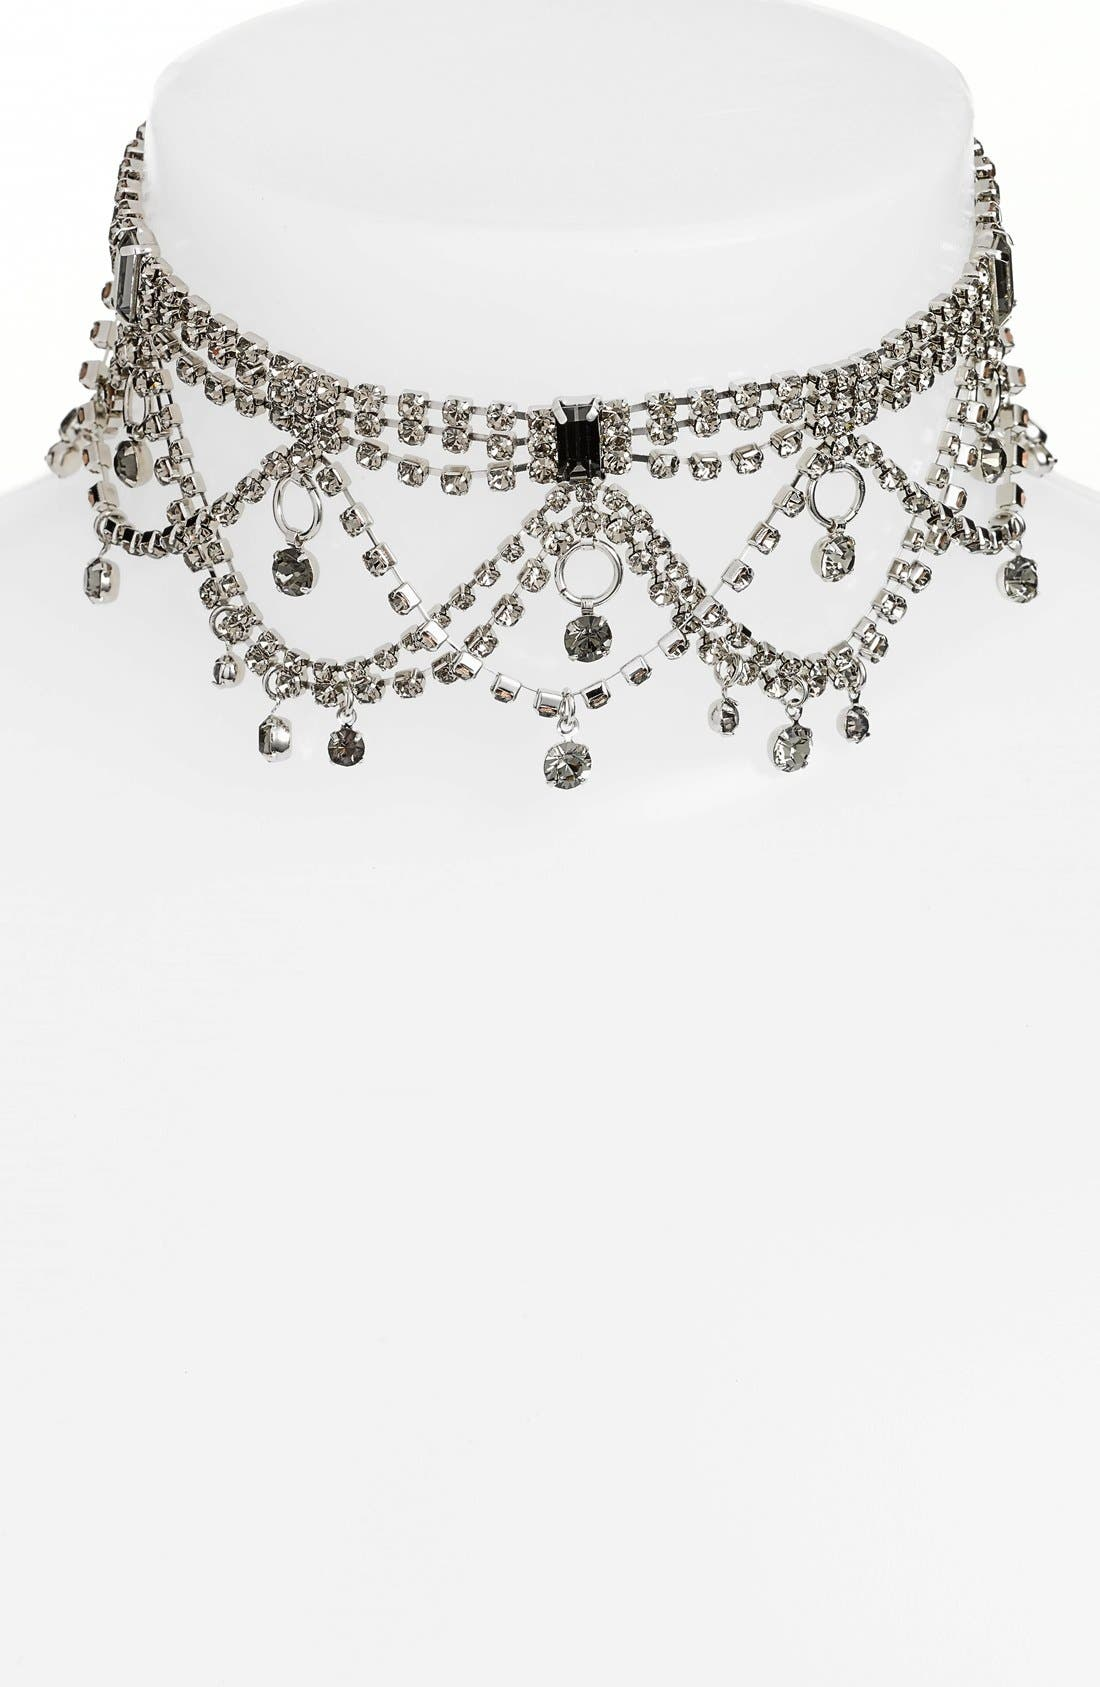 Alternate Image 1 Selected - Cristabelle Crystal Choker Necklace